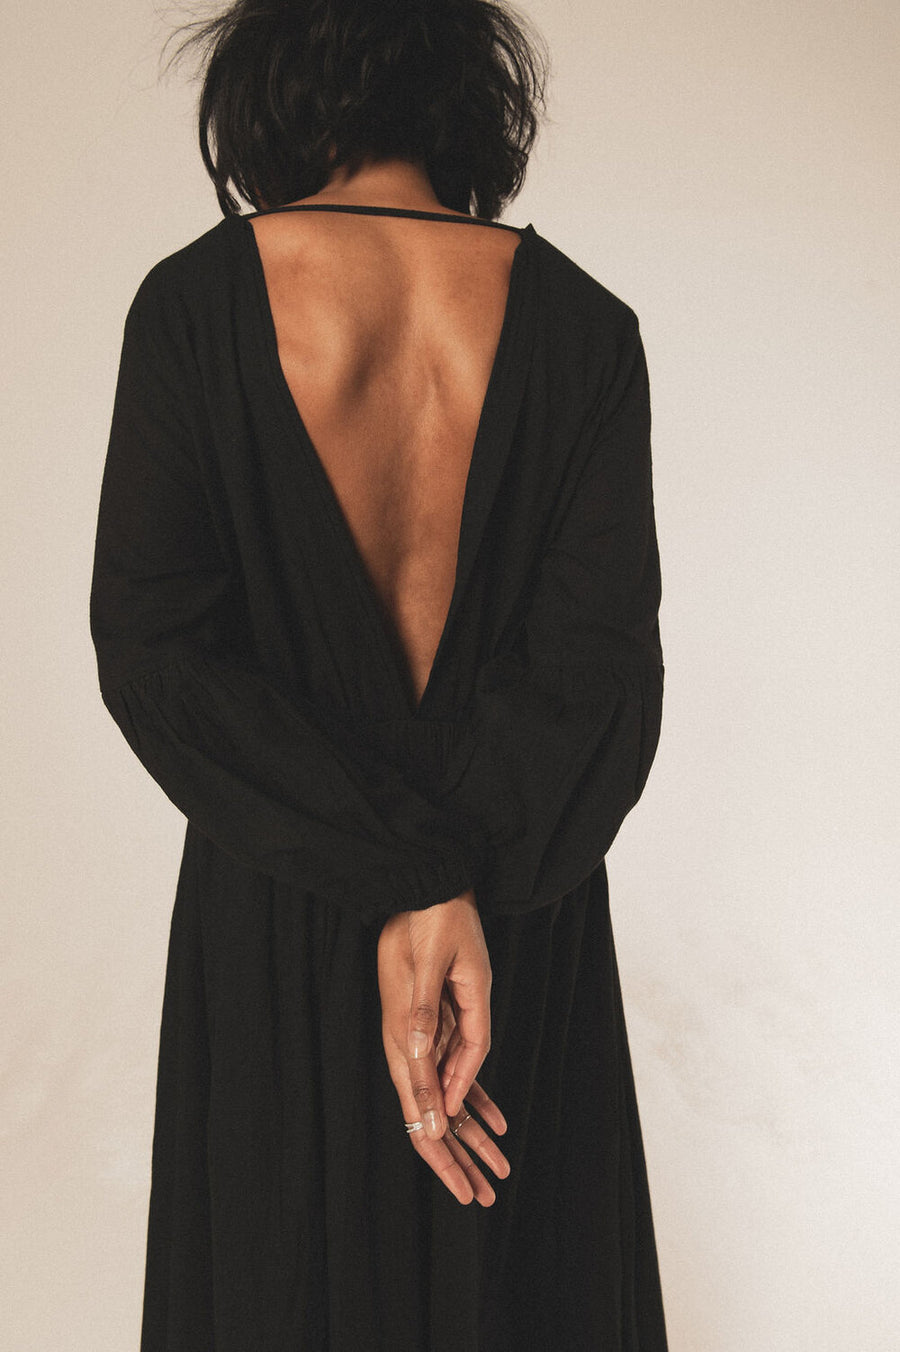 Wild Heart Organic Cotton Maxi Dress in Black - Pre Order